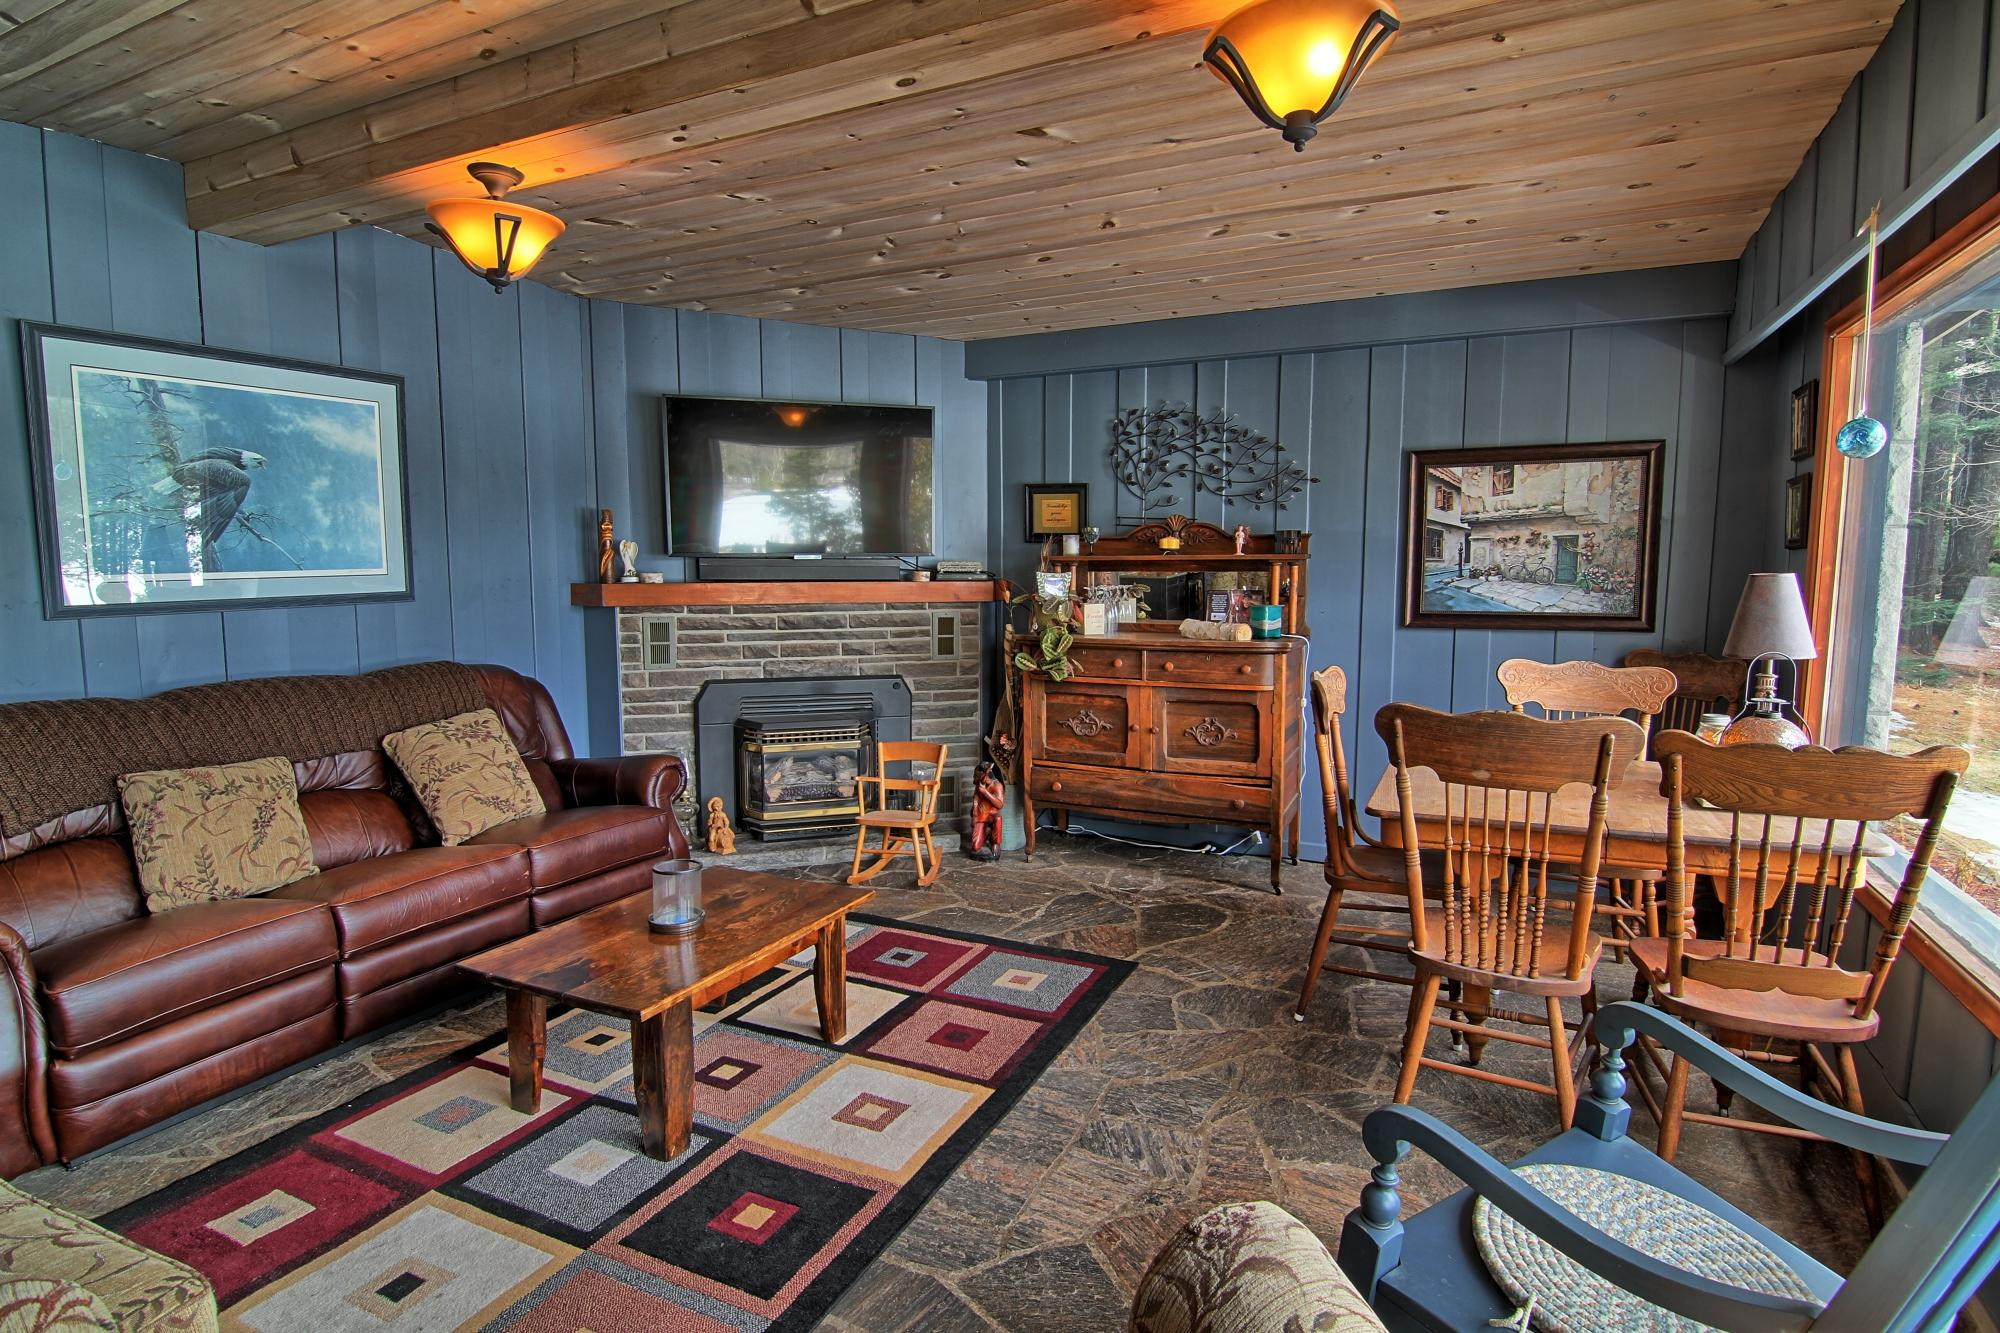 fractional for rentals shared a ownership the club ontario muskokan resort on sale interval sales cottages muskoka cottage home